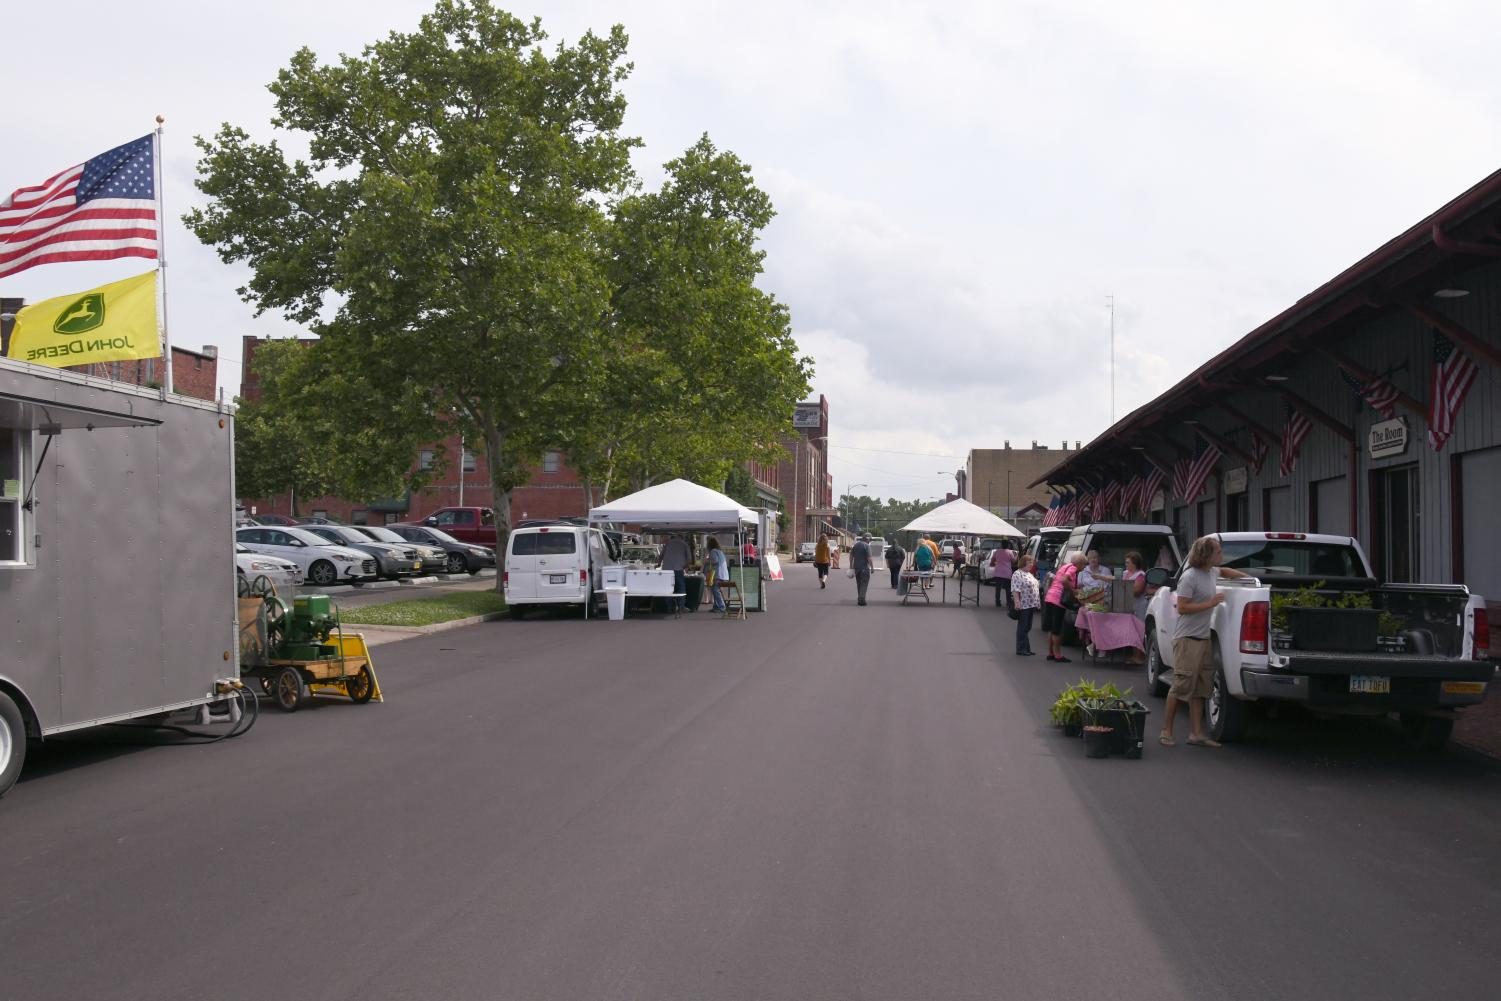 The Zanesville Farmers' Market hosted downtown on Wednesdays is moving from Third Street to Fourth Street.